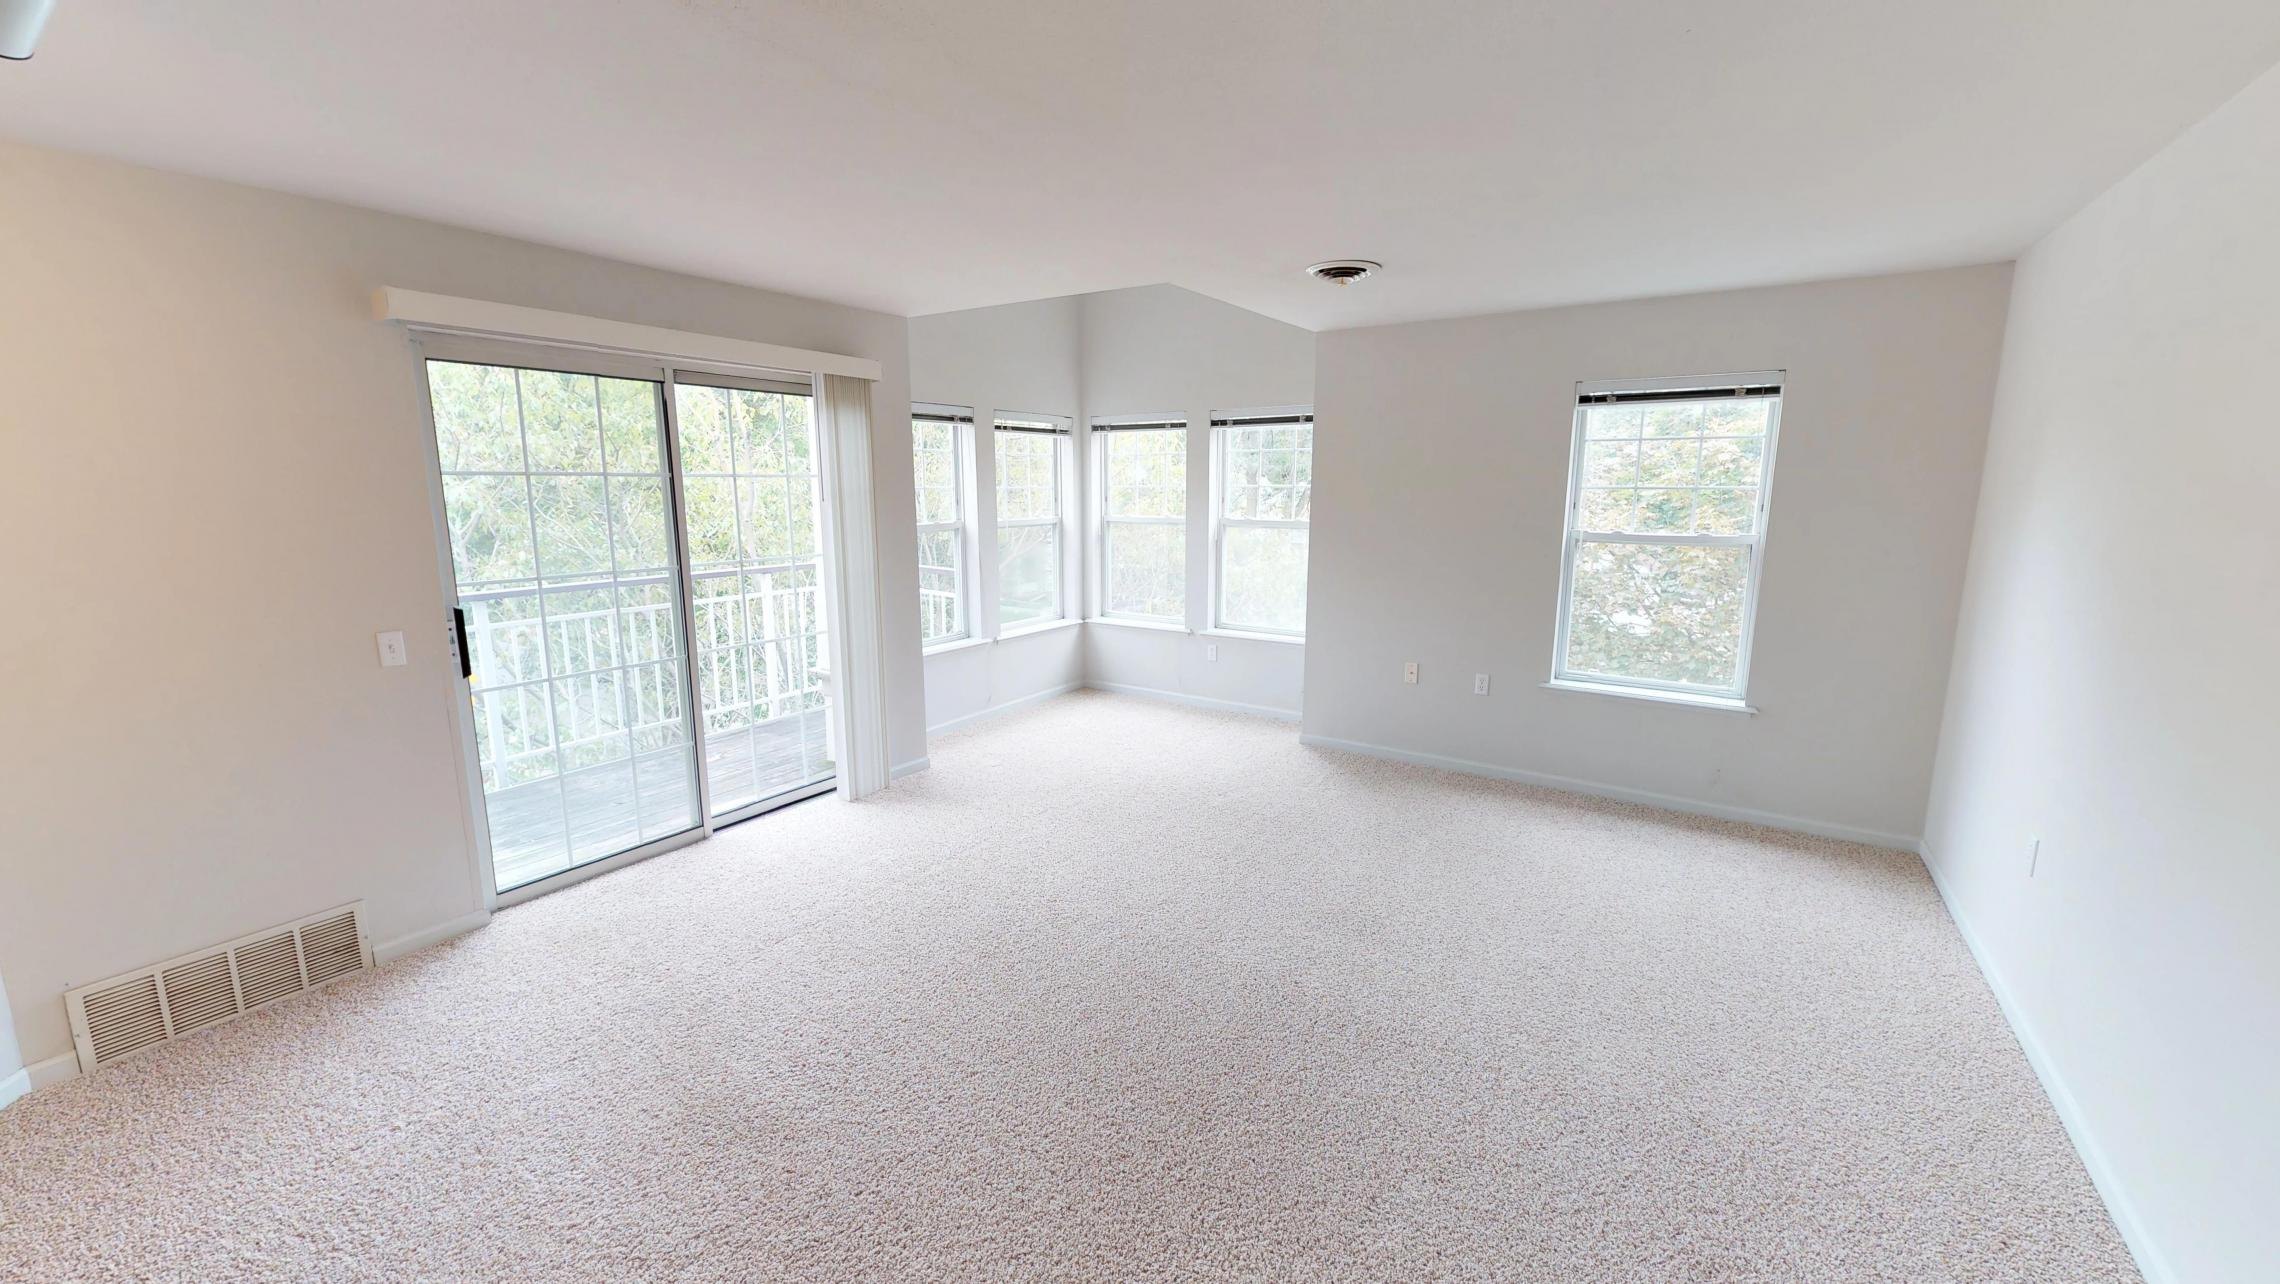 Wilson-Bay-Apartments-306-one bedroom- downtown- balcony-natural light